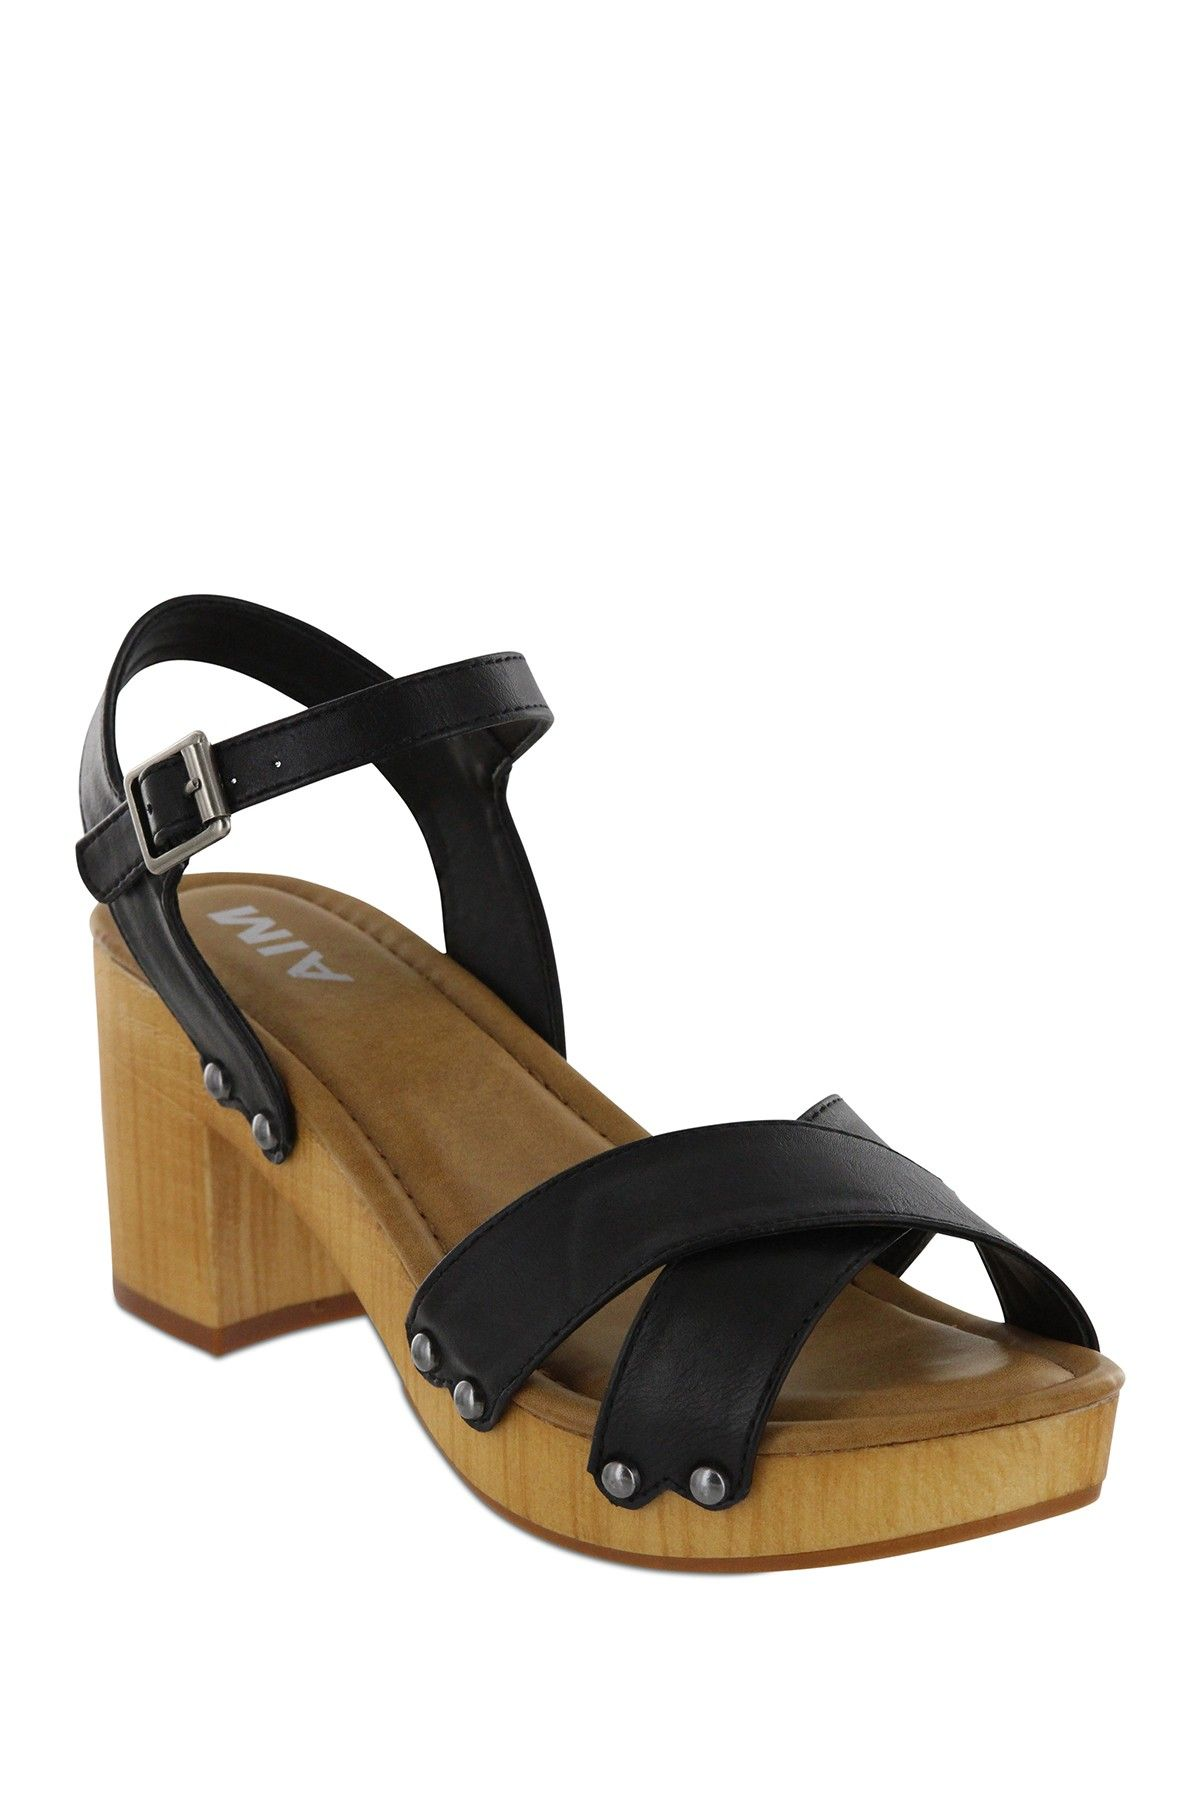 13a11158fca MIA - Susan Platform Clogs is now 32-33% off. Free Shipping on orders over   100.